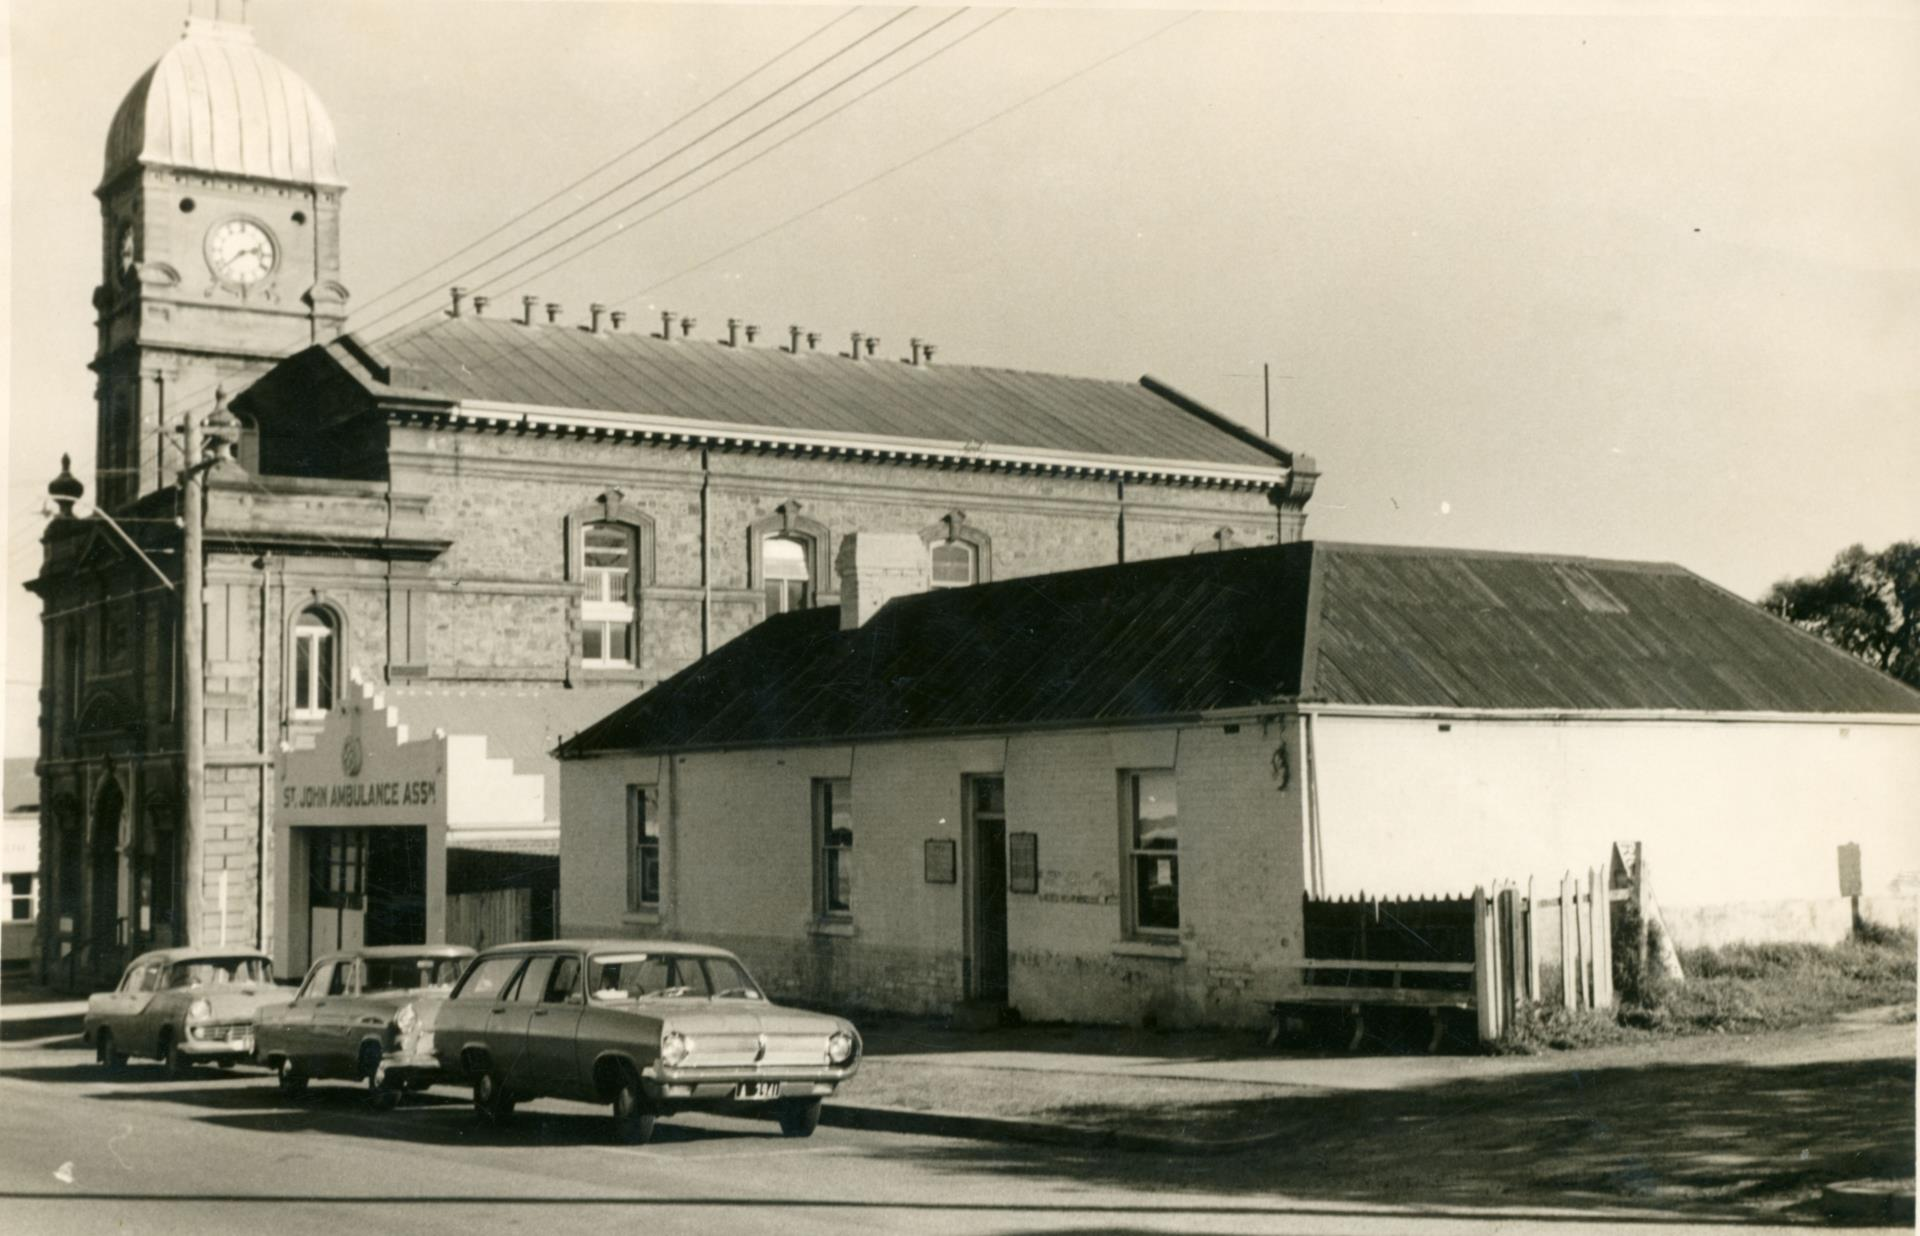 Municipal Library on York Street prior demolition with St Johns Ambulance building and the Town Hall [ca 1966]